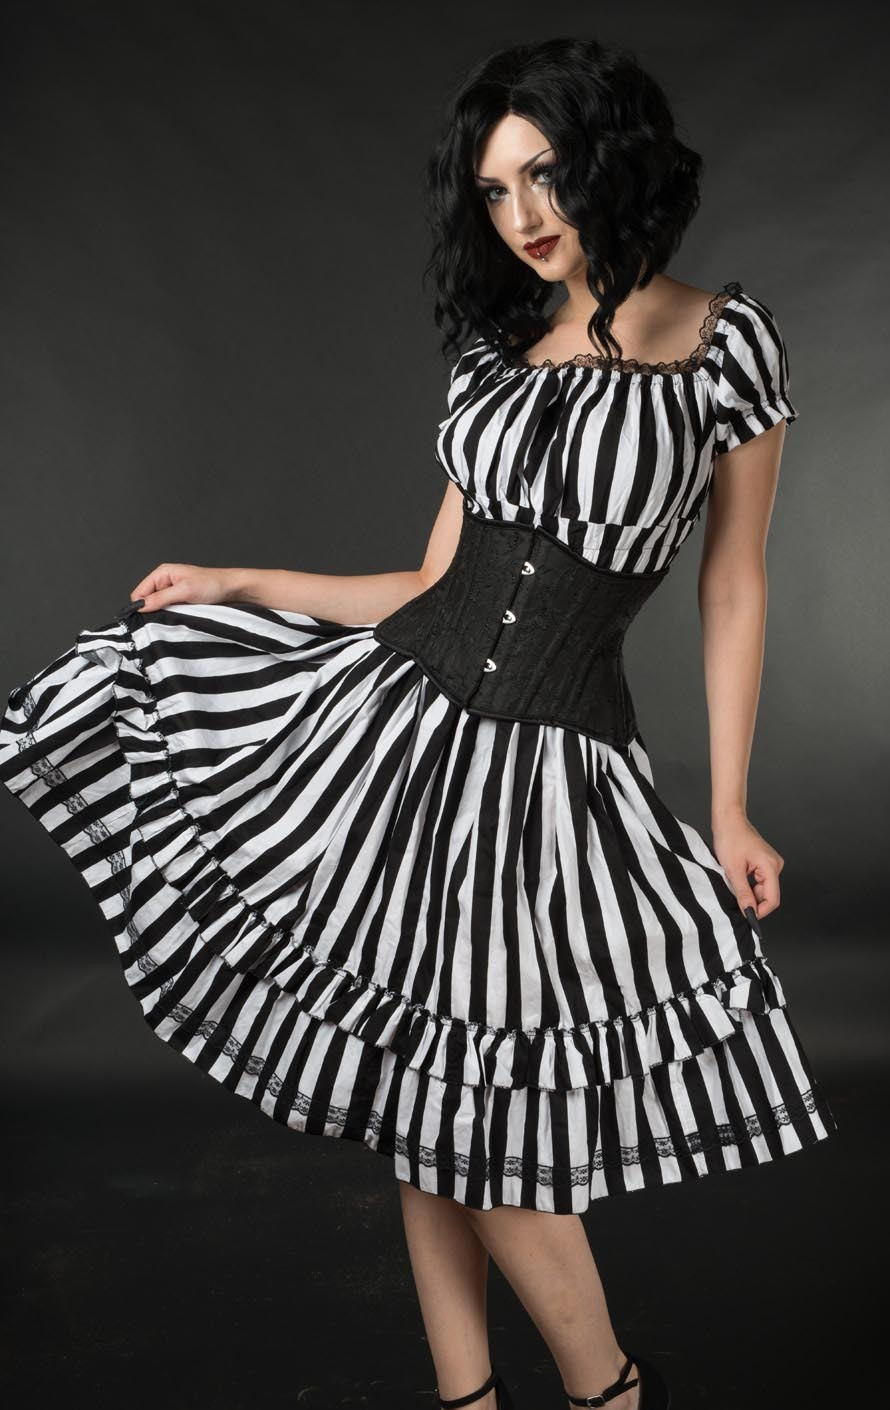 Striped gothabilly dress 32